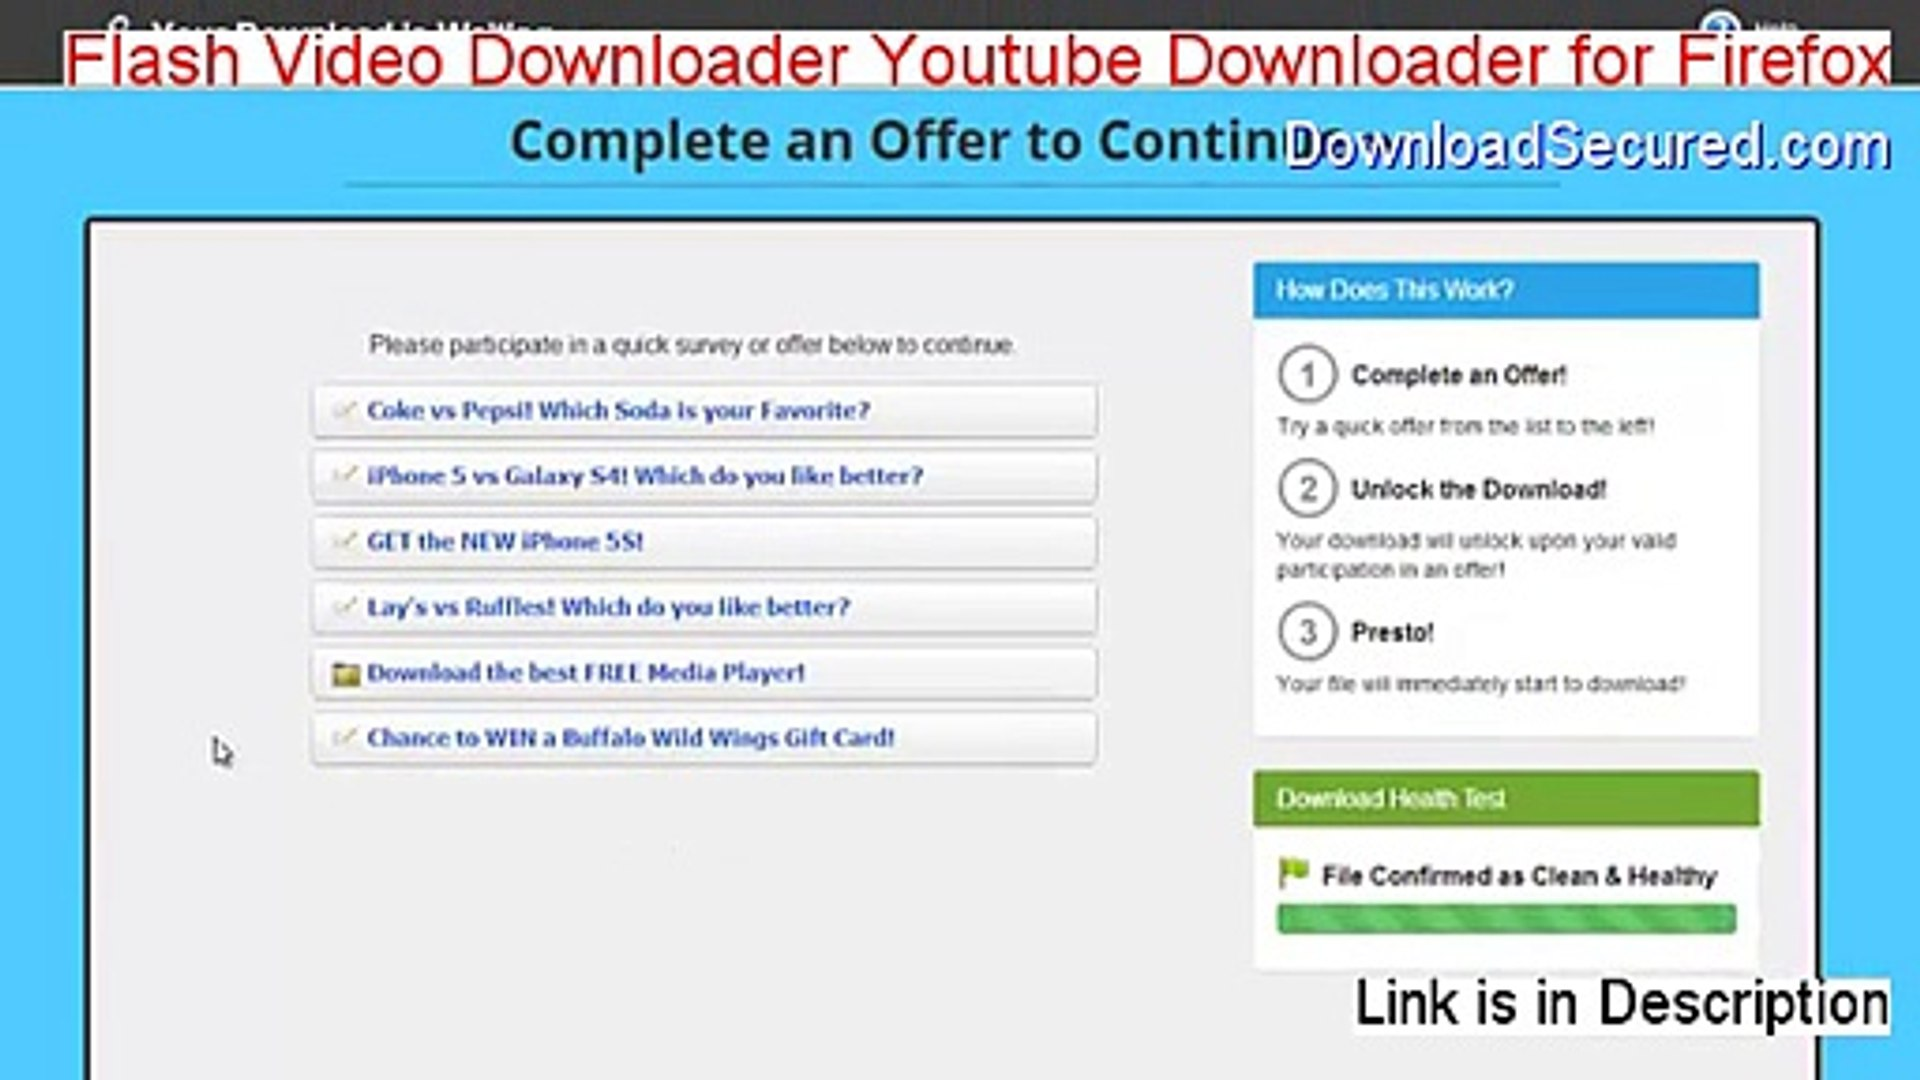 Flash Video Downloader Youtube Downloader for Firefox Download Free  [Download Here]